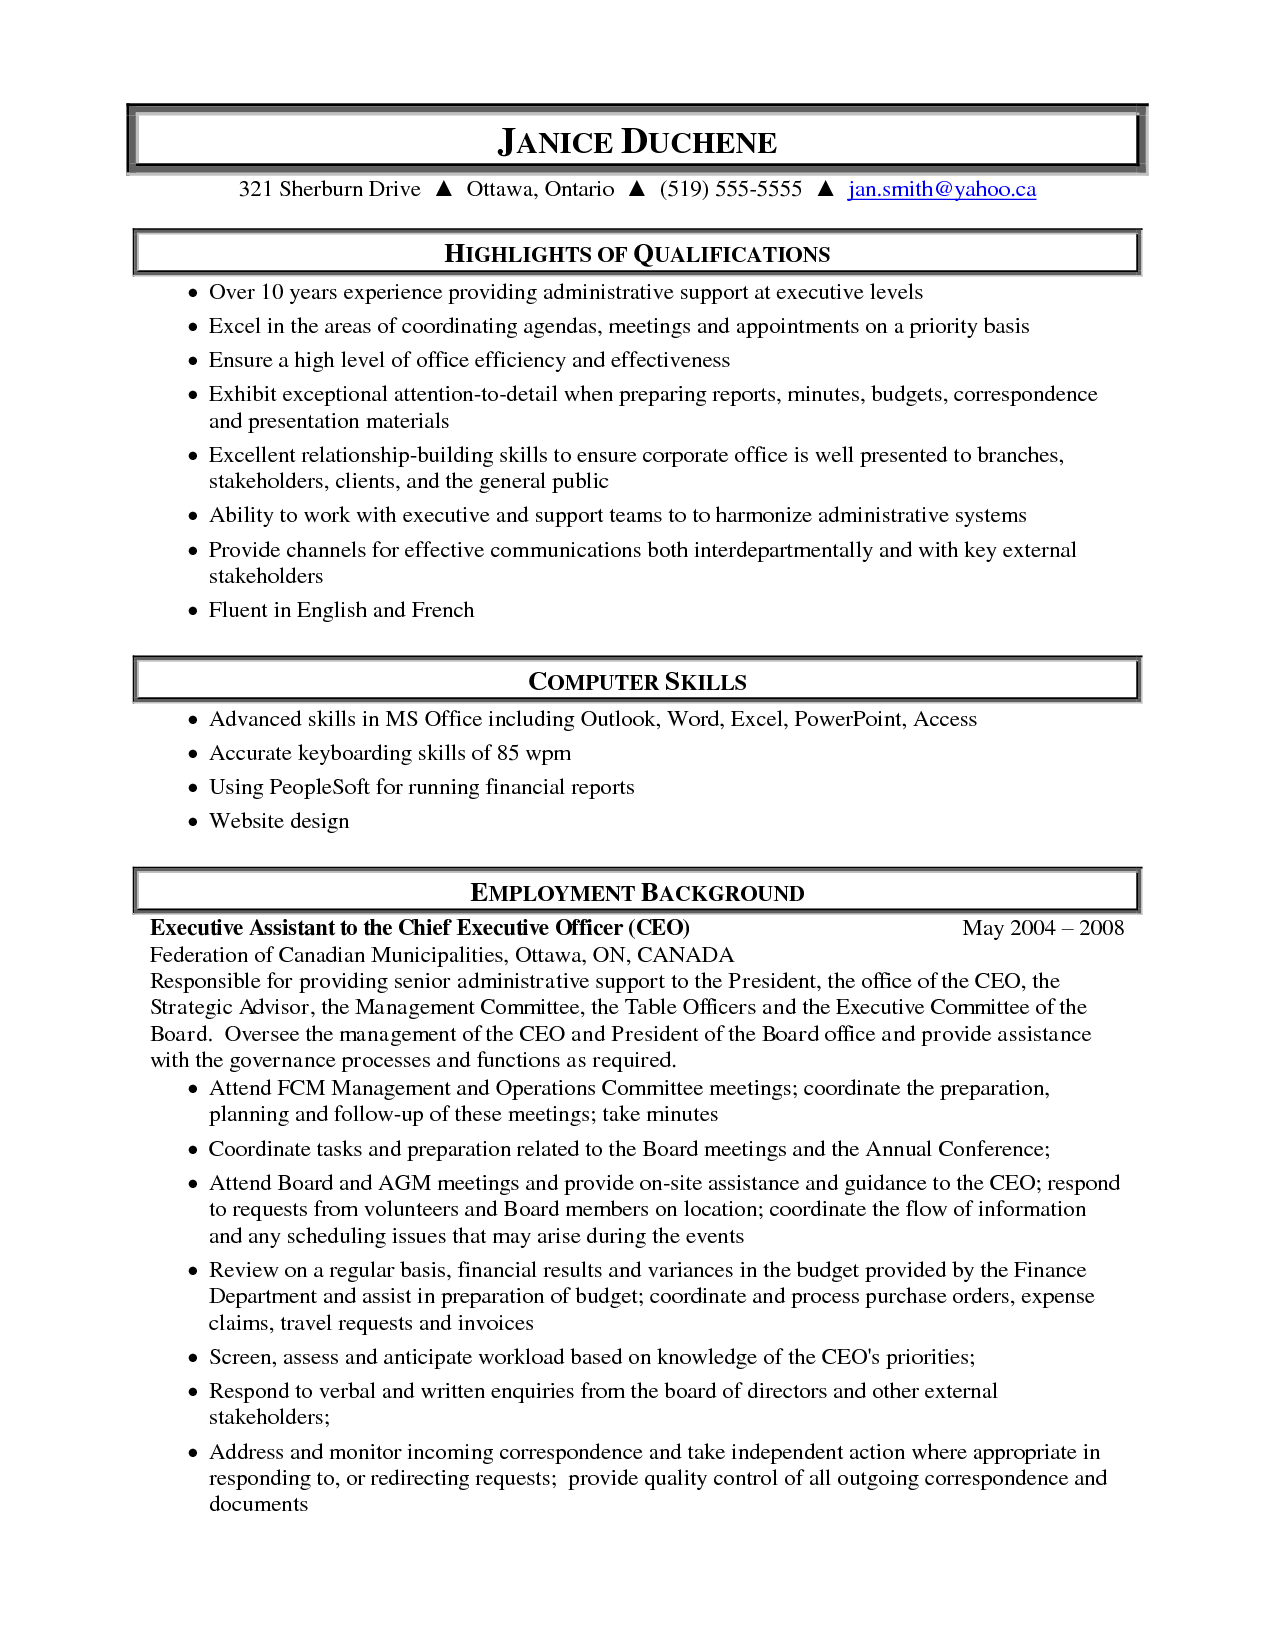 Resume Objective For Administrative Assistant Sample Resume Of Administrative Assistant Sample Resume Of